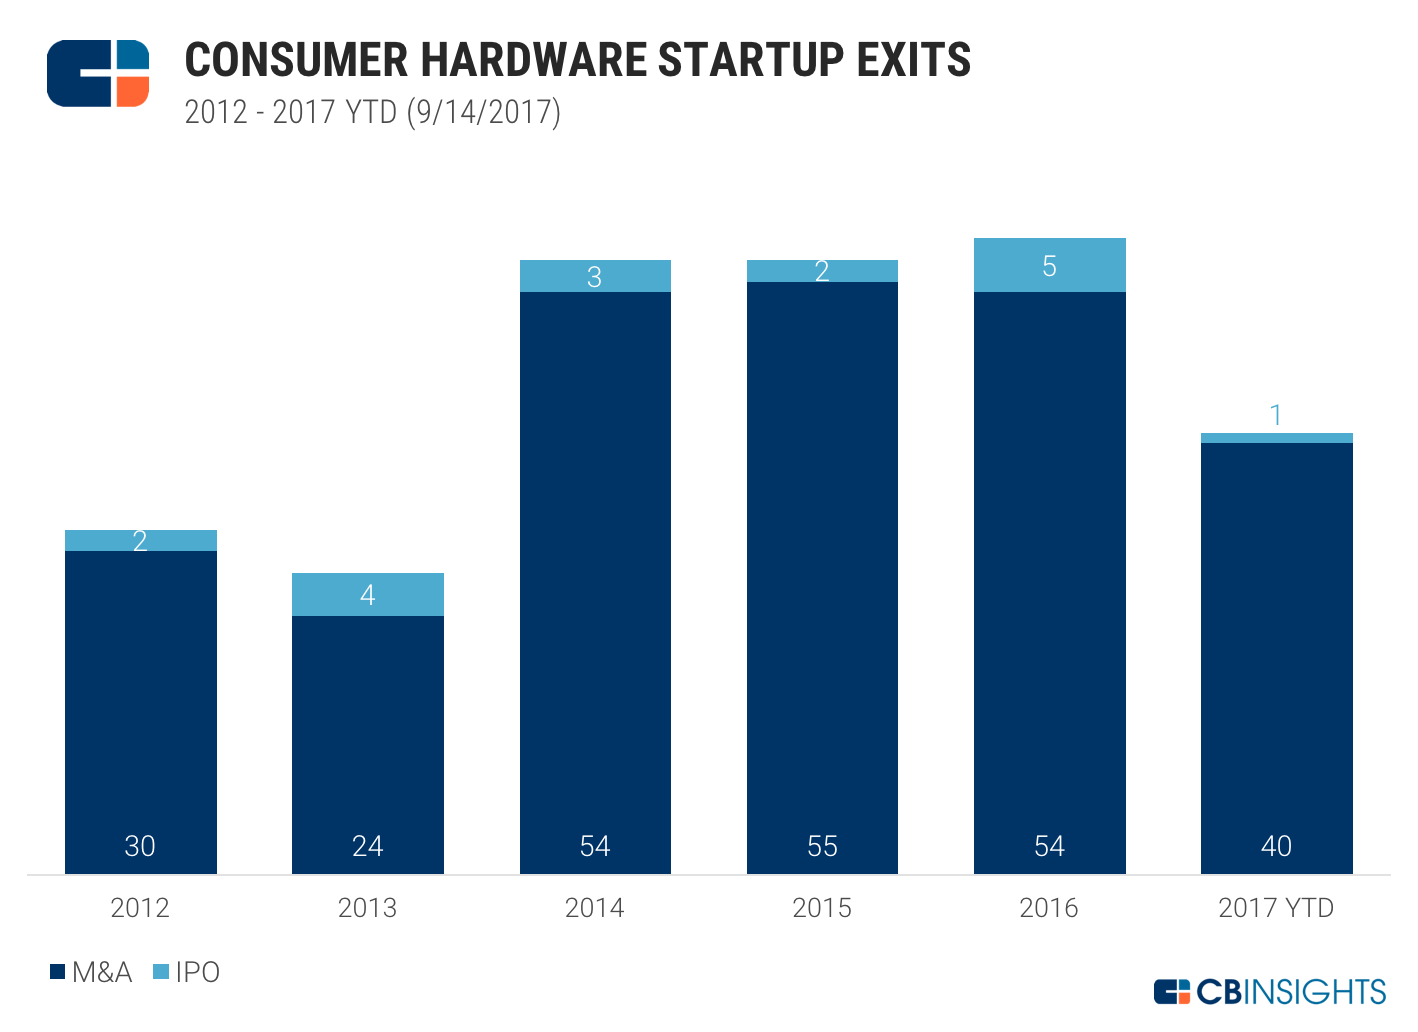 Hardware Is Hard - So How Can Consumer Hardware Startups Succeed?